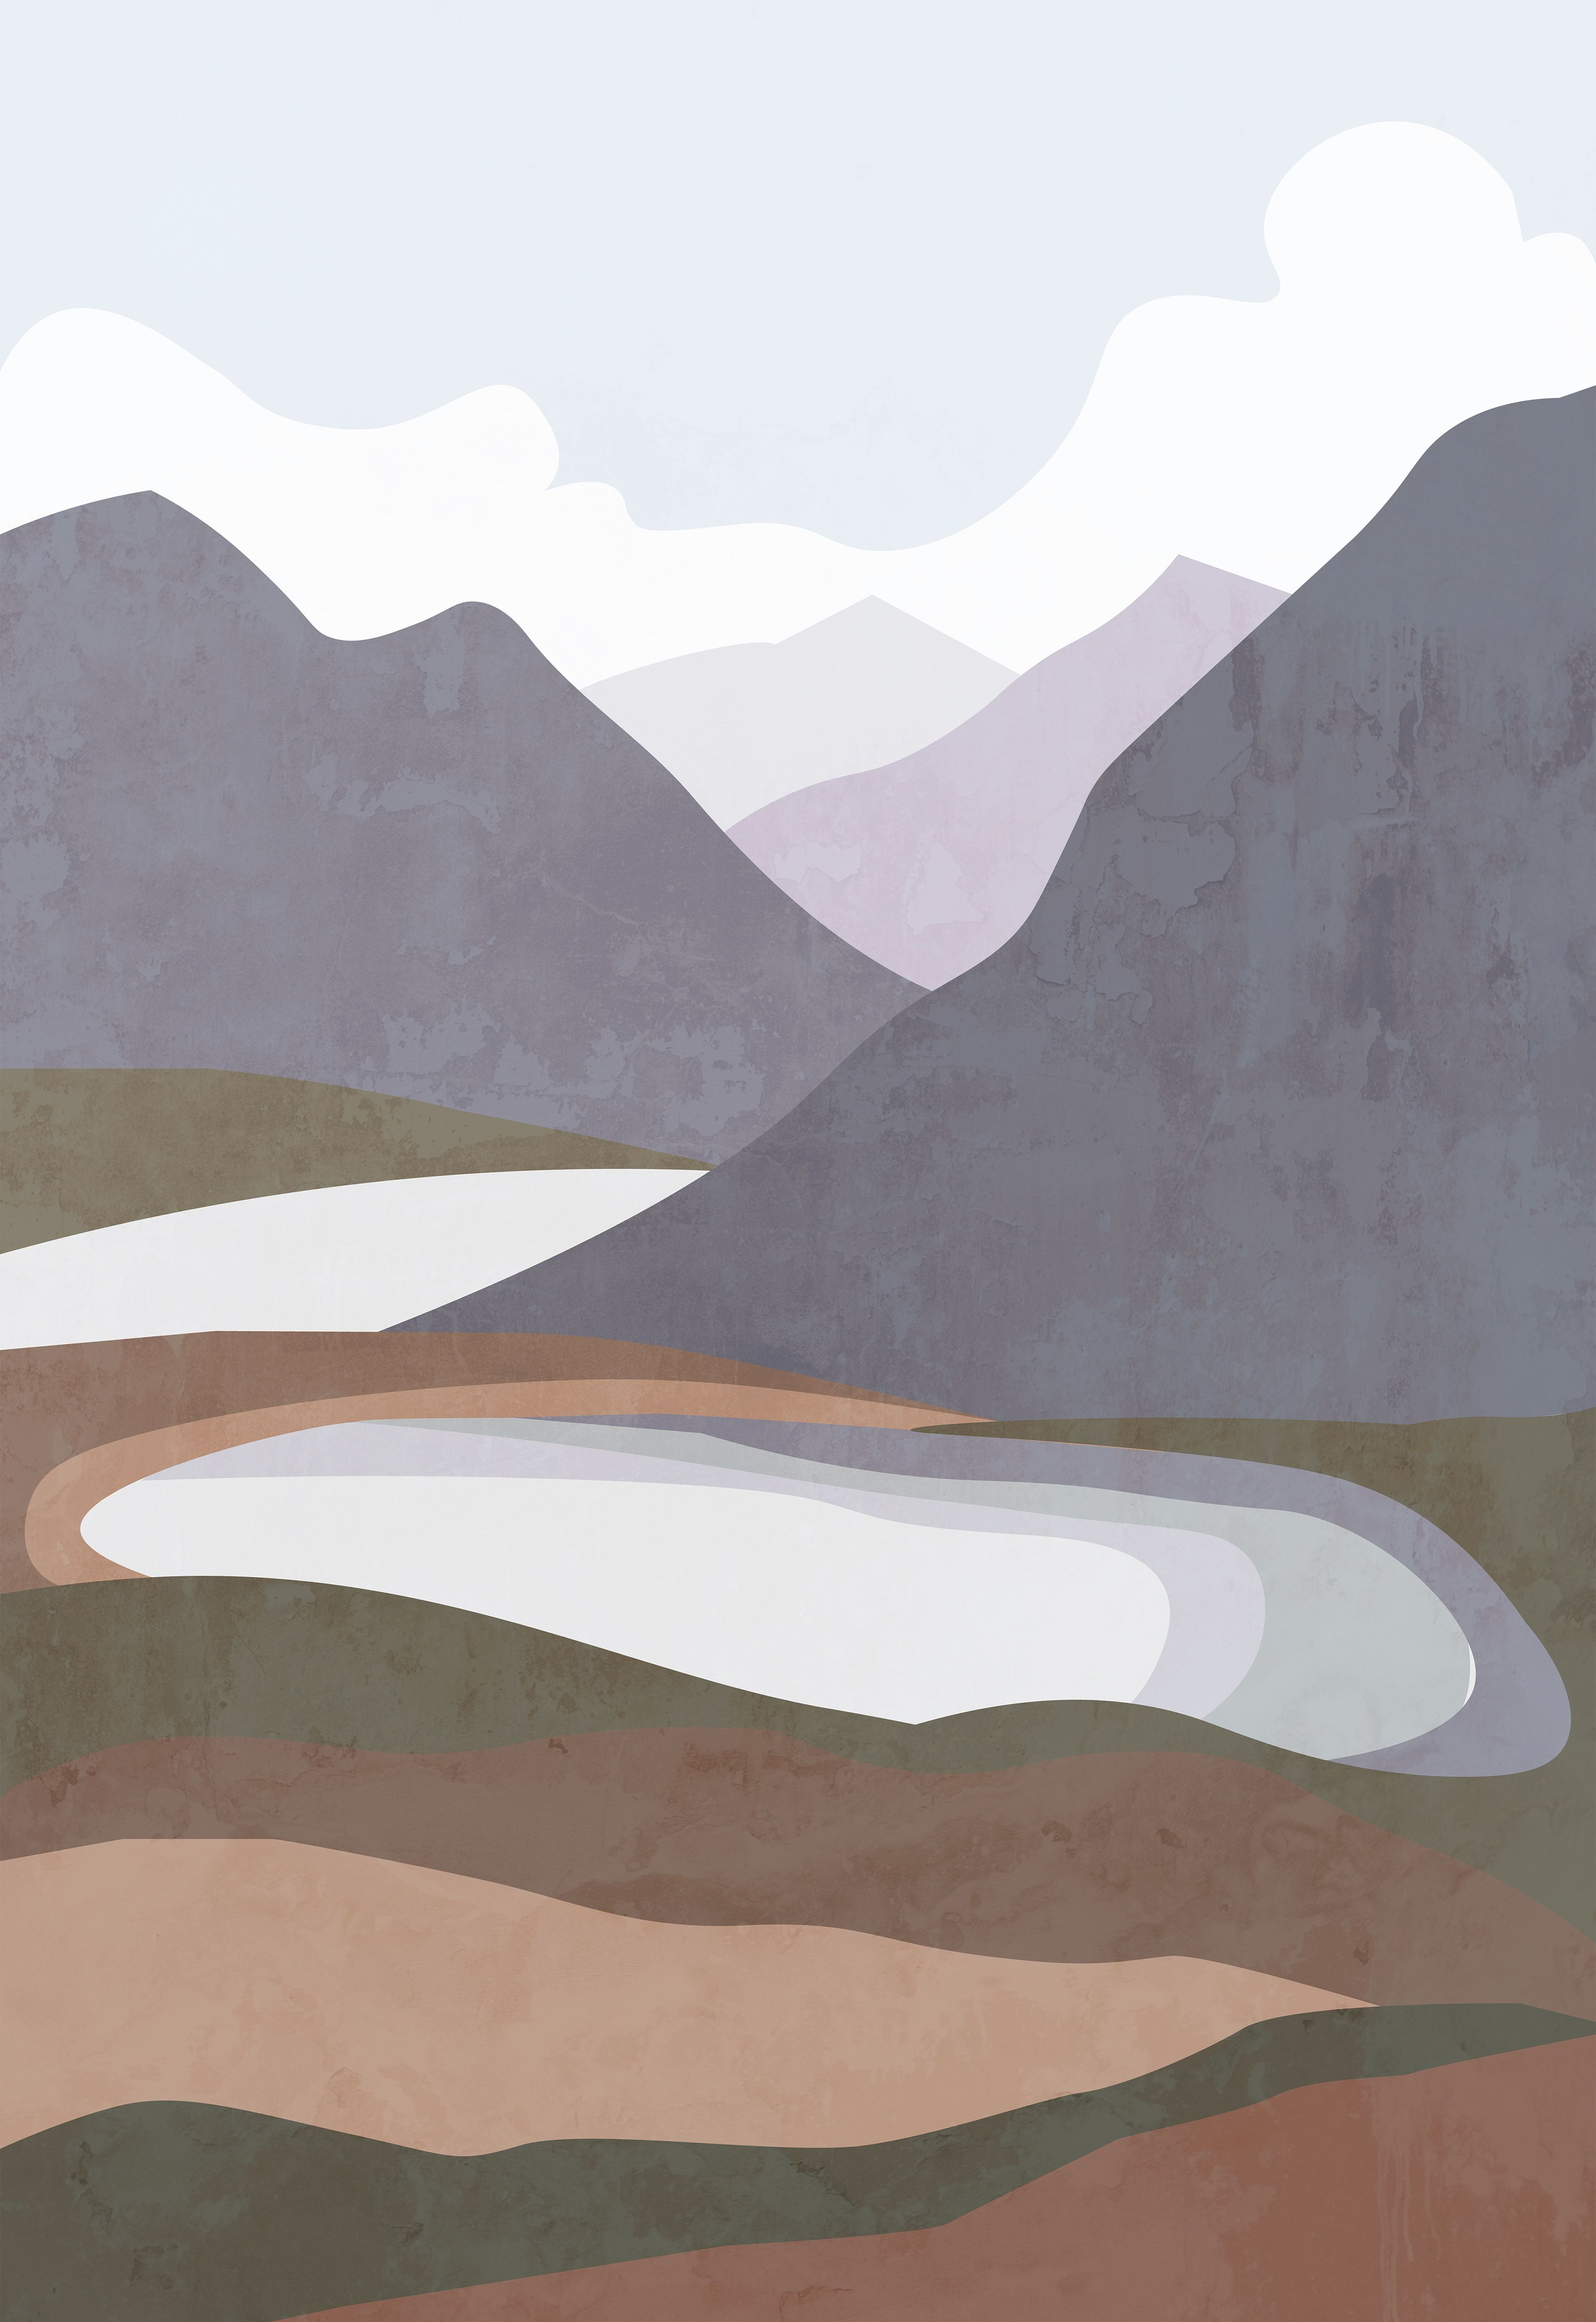 Modern Abstract Mountain Poster Landscape Print Nature Etsy Nature Posters Painting Art Projects Geometric Art